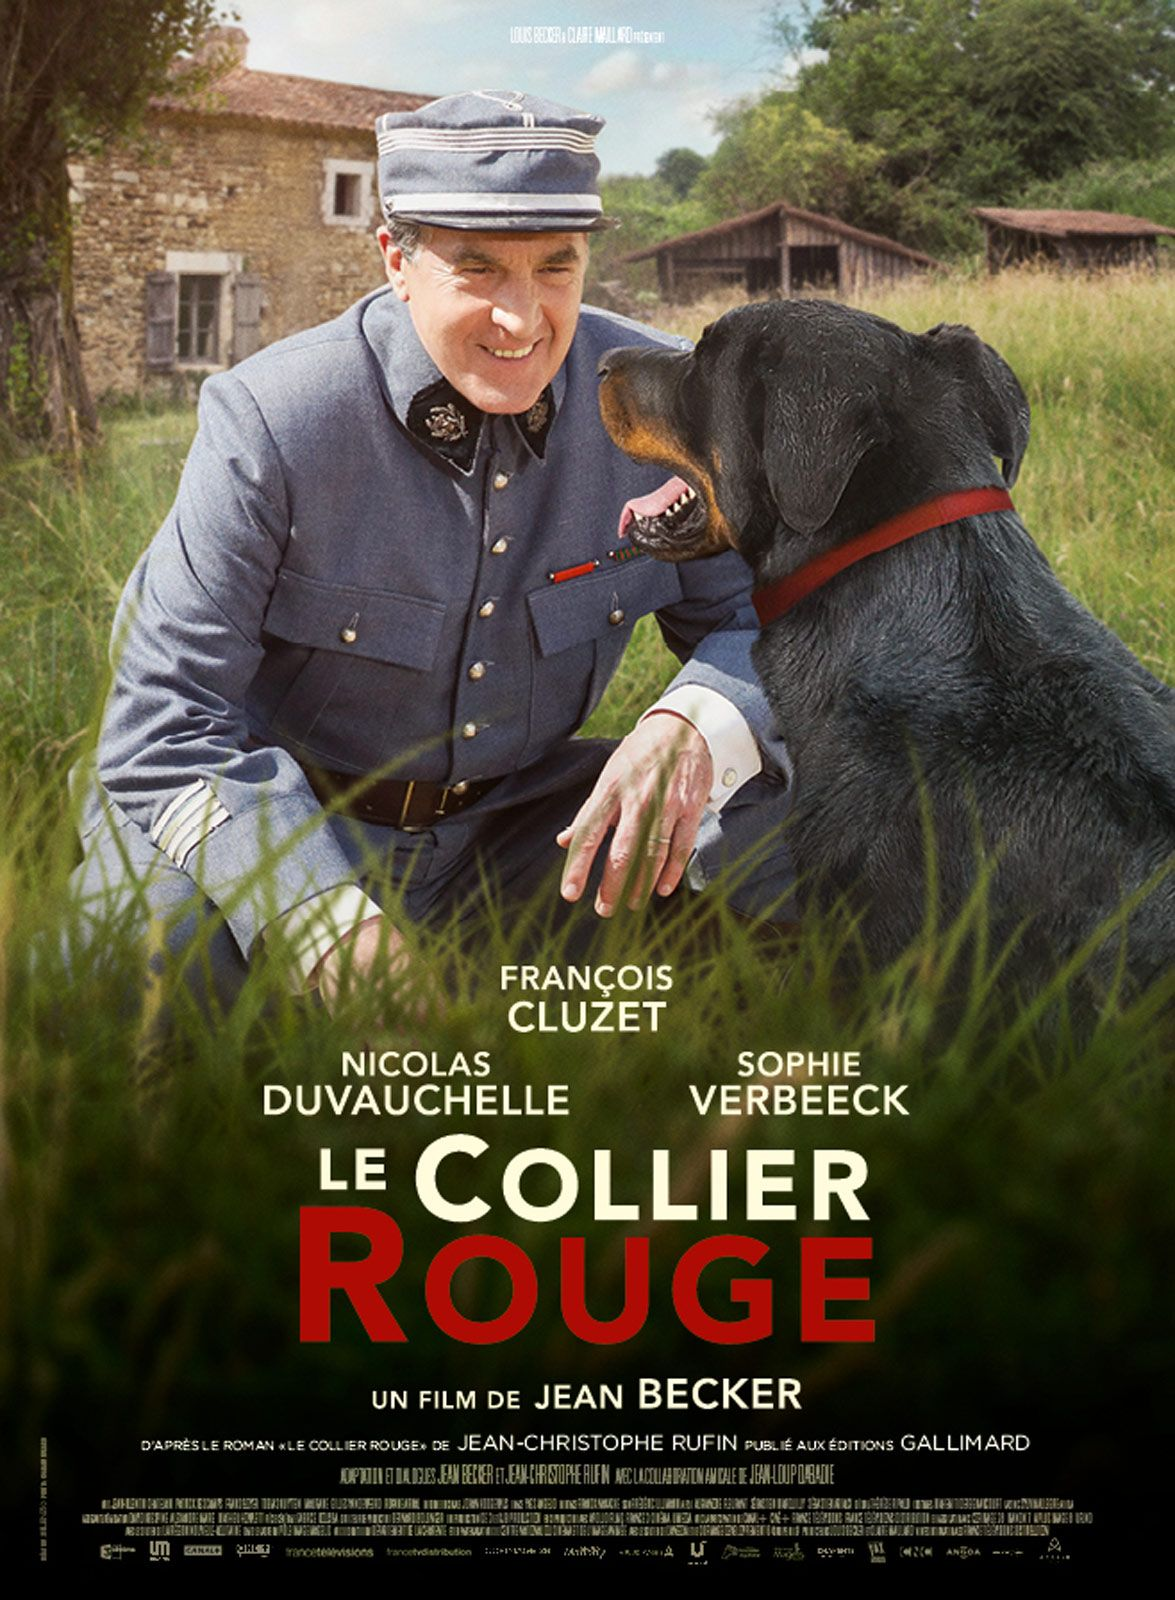 Le Collier rouge - Film (2018) - SensCritique